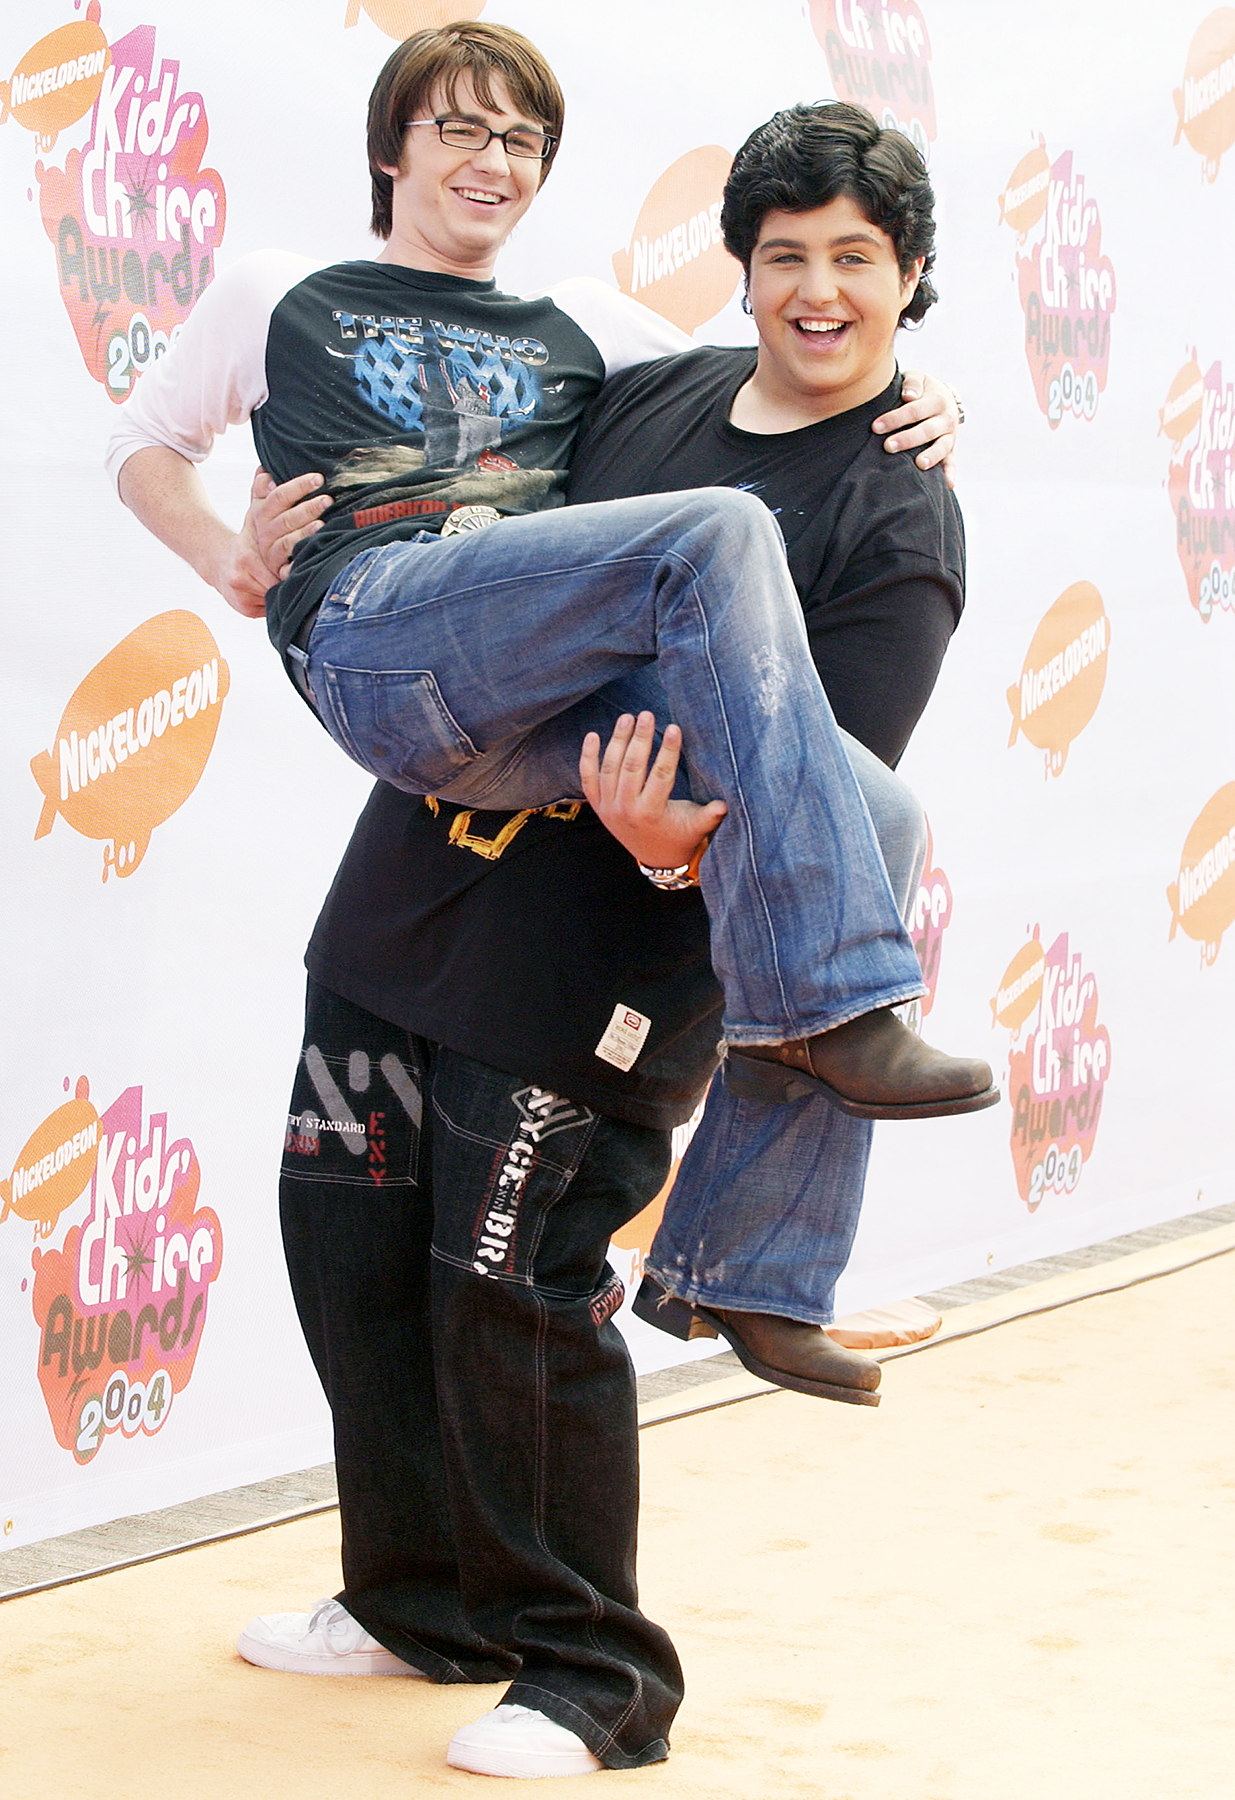 Drake Bell Josh Peck - Quick pick-me-up! Peck jokingly carried Bell in his arms on the red carpet at the Kids' Choice Awards in Westwood, California.